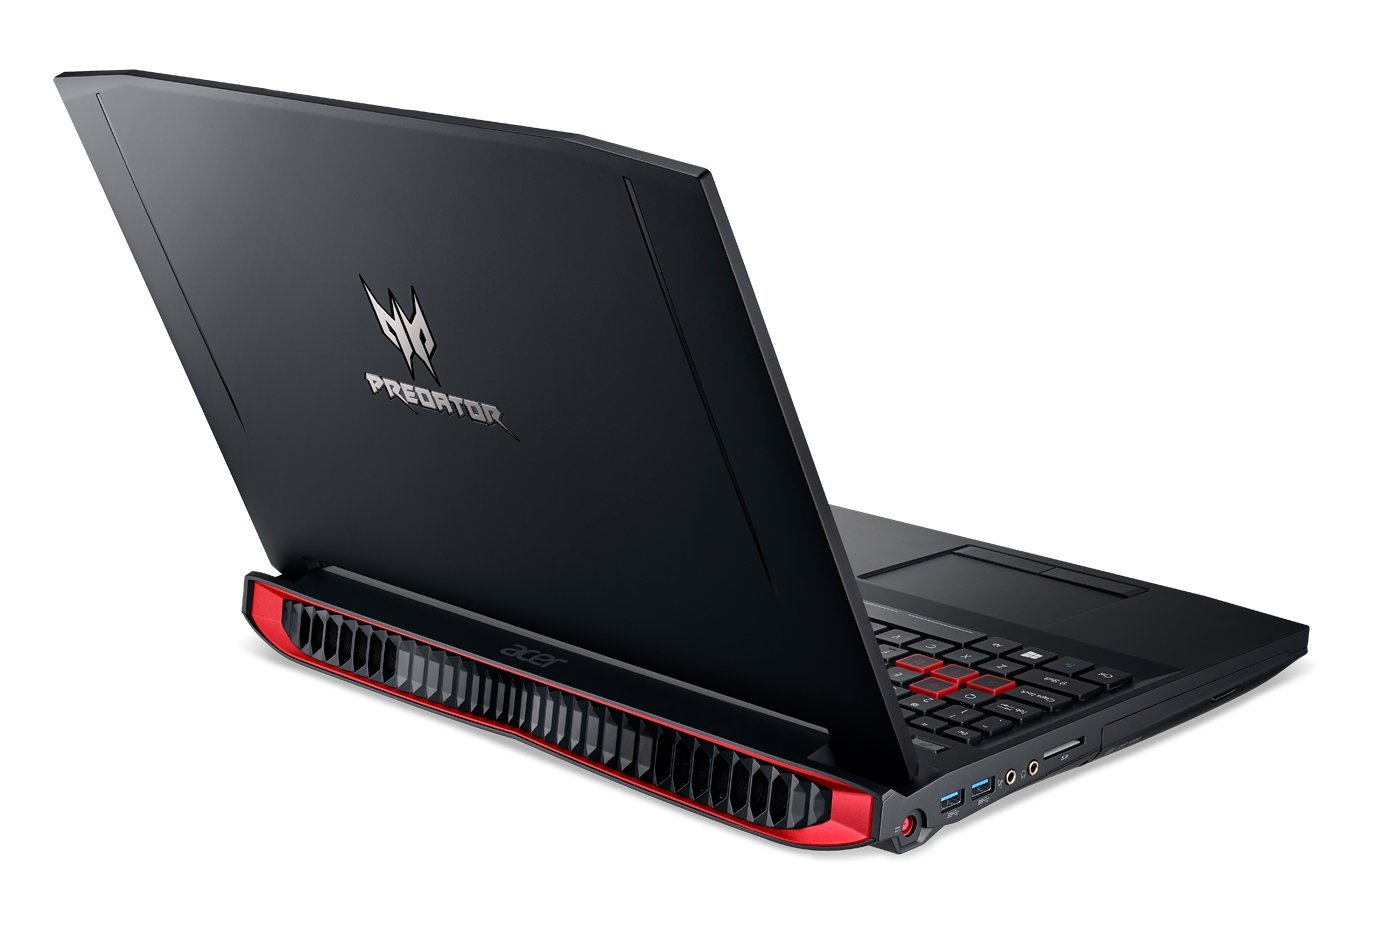 DRIVERS UPDATE: ACER PREDATOR G9-791 REALTEK CARD READER